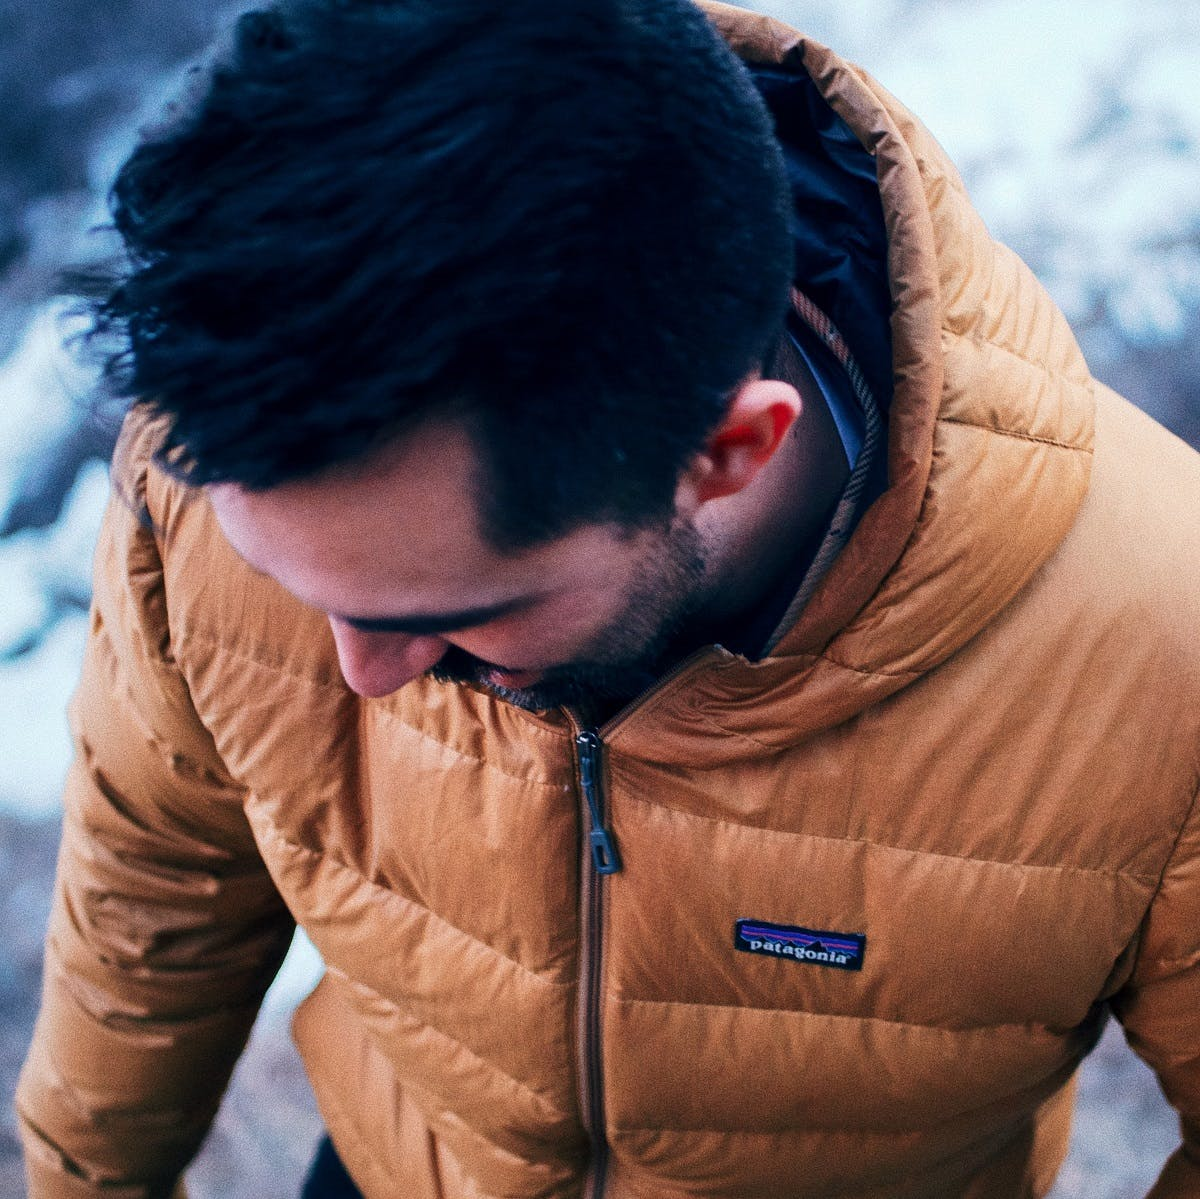 A man wearing a Patagonia jacket. Patagonia are advocates of a circular economy